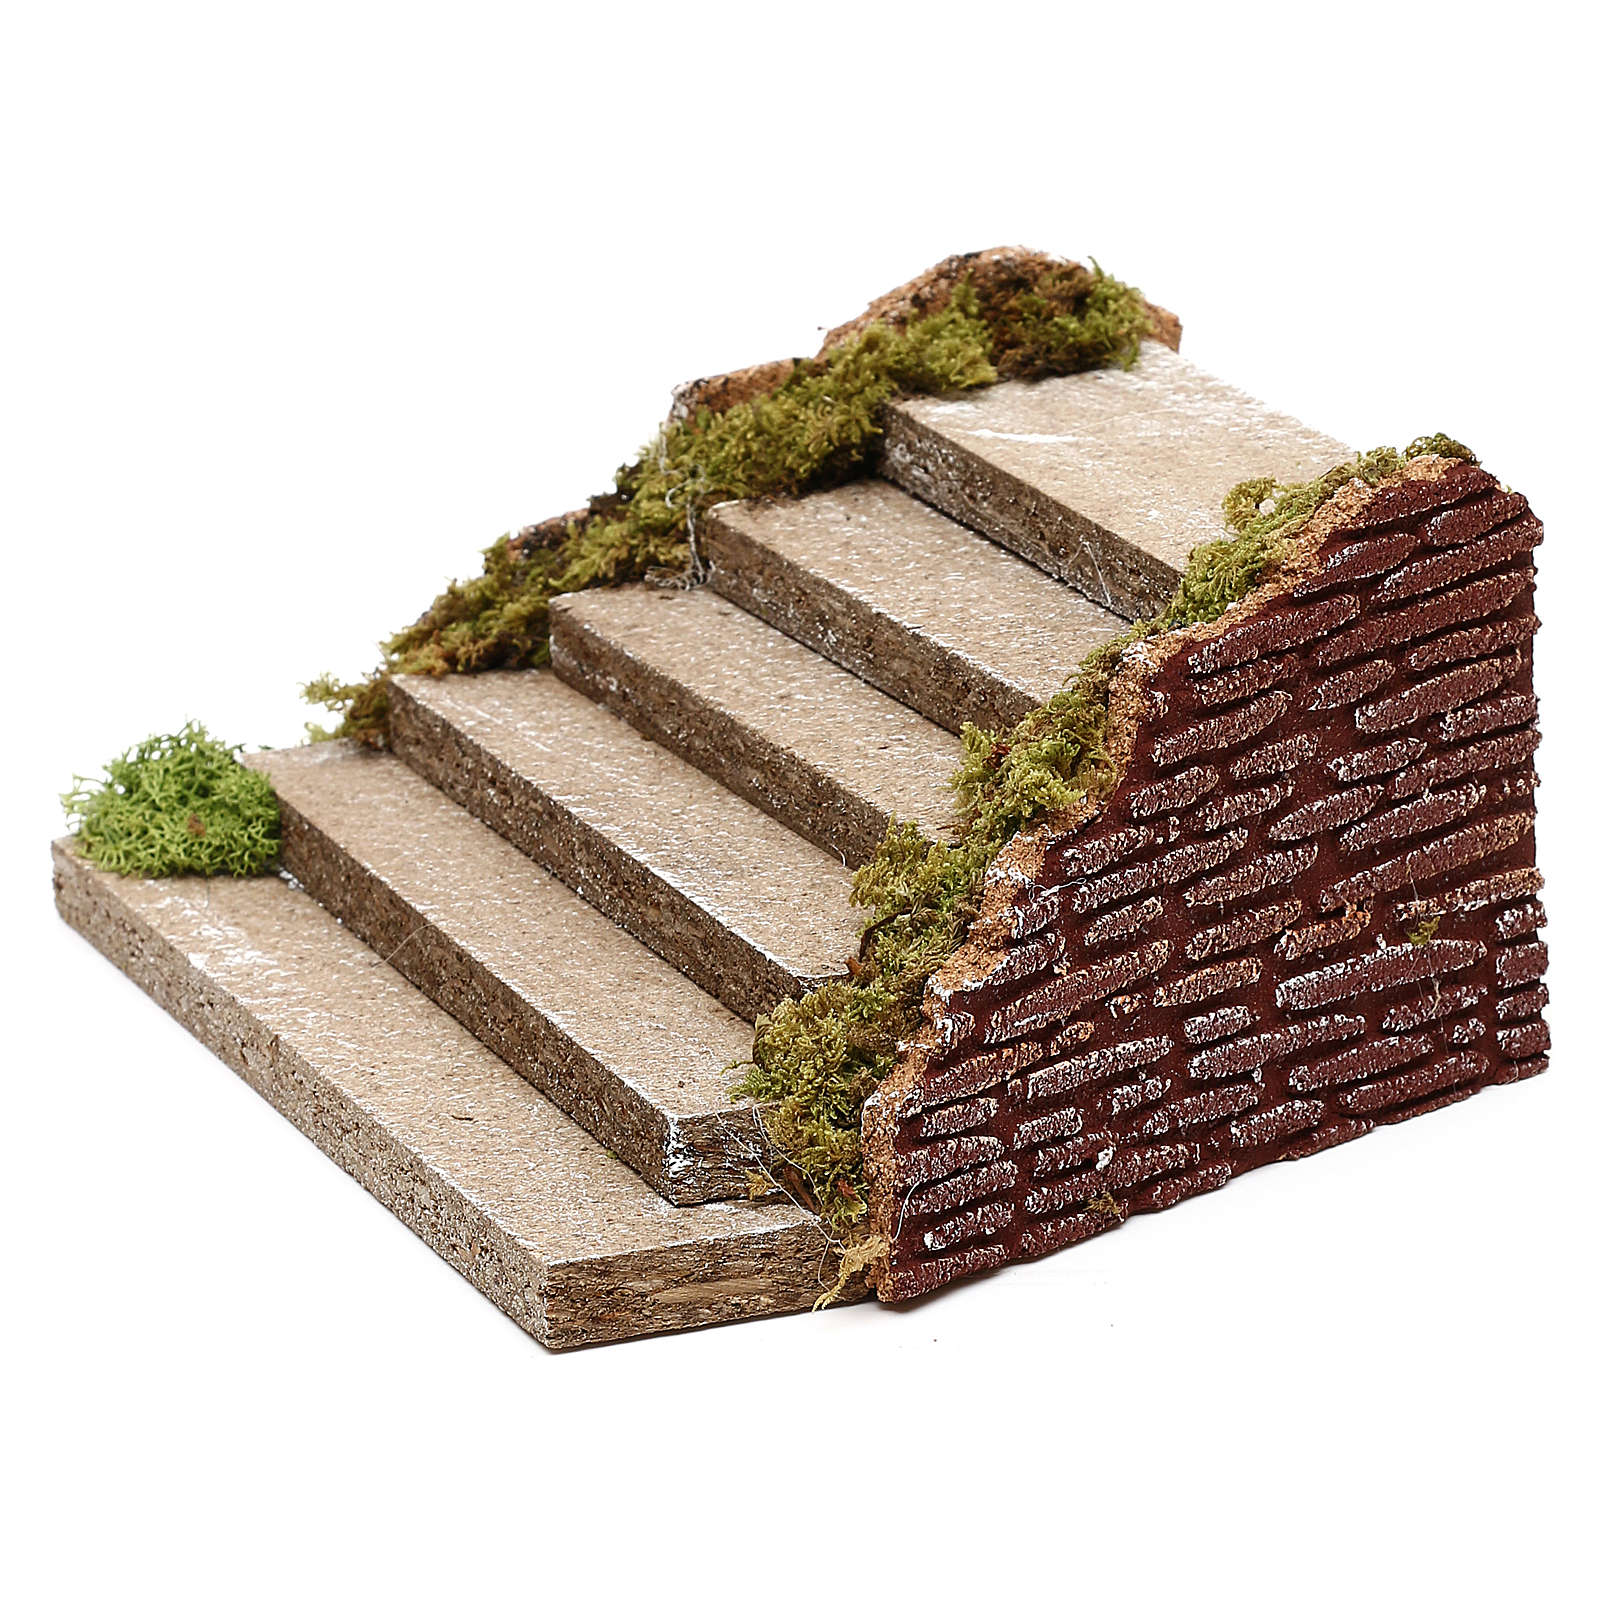 Wooden staircase with moss for Nativity scene 5x20x15 cm 4